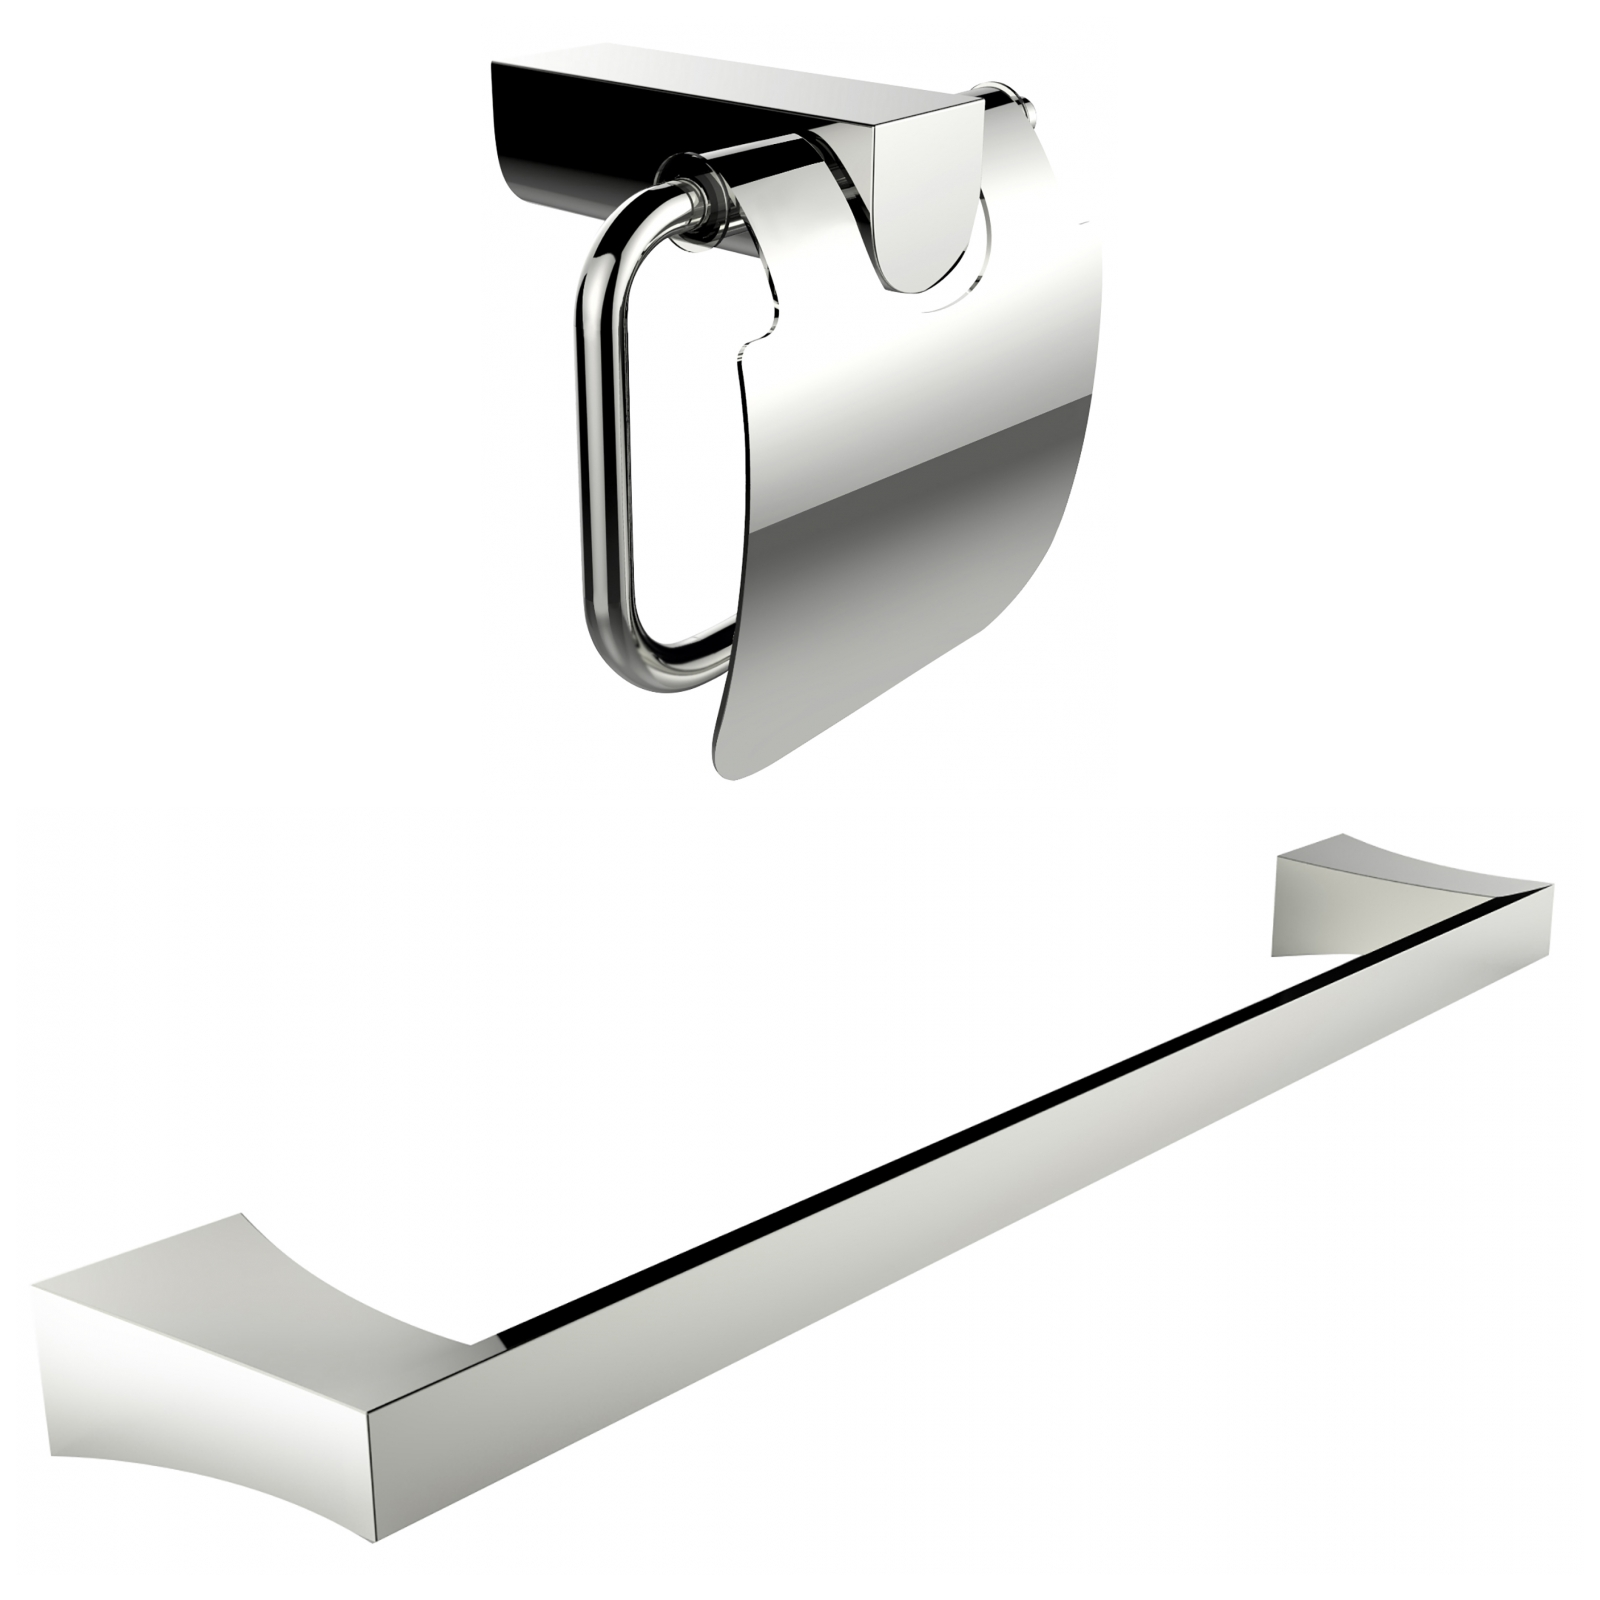 Chrome Plated Toilet Paper Holder With Single Rod Towel Rack Accessory Set by American Imaginations